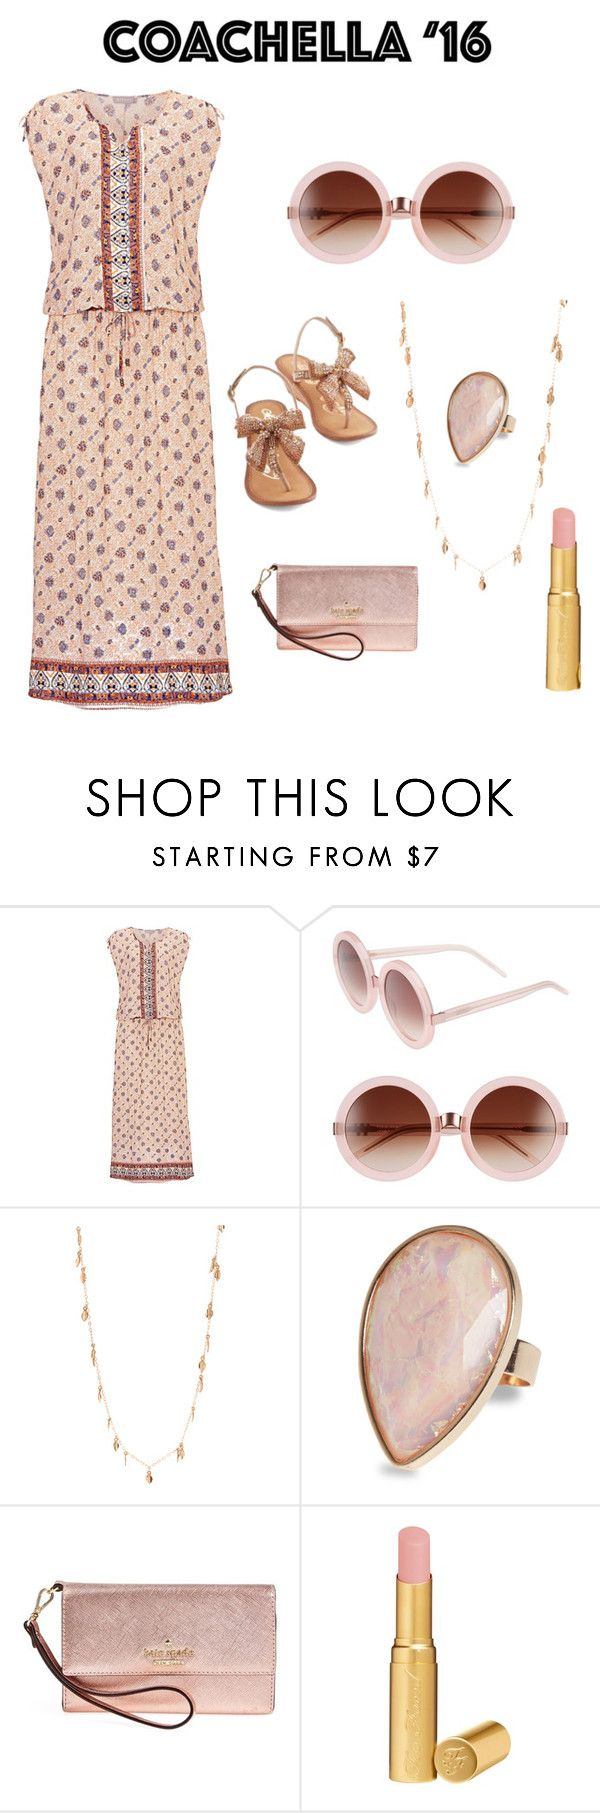 """""""coachella.outfit"""" by im-karla-with-a-k ❤ liked on Polyvore featuring Wildfox, Dinny Hall, Kate Spade and Too Faced Cosmetics"""